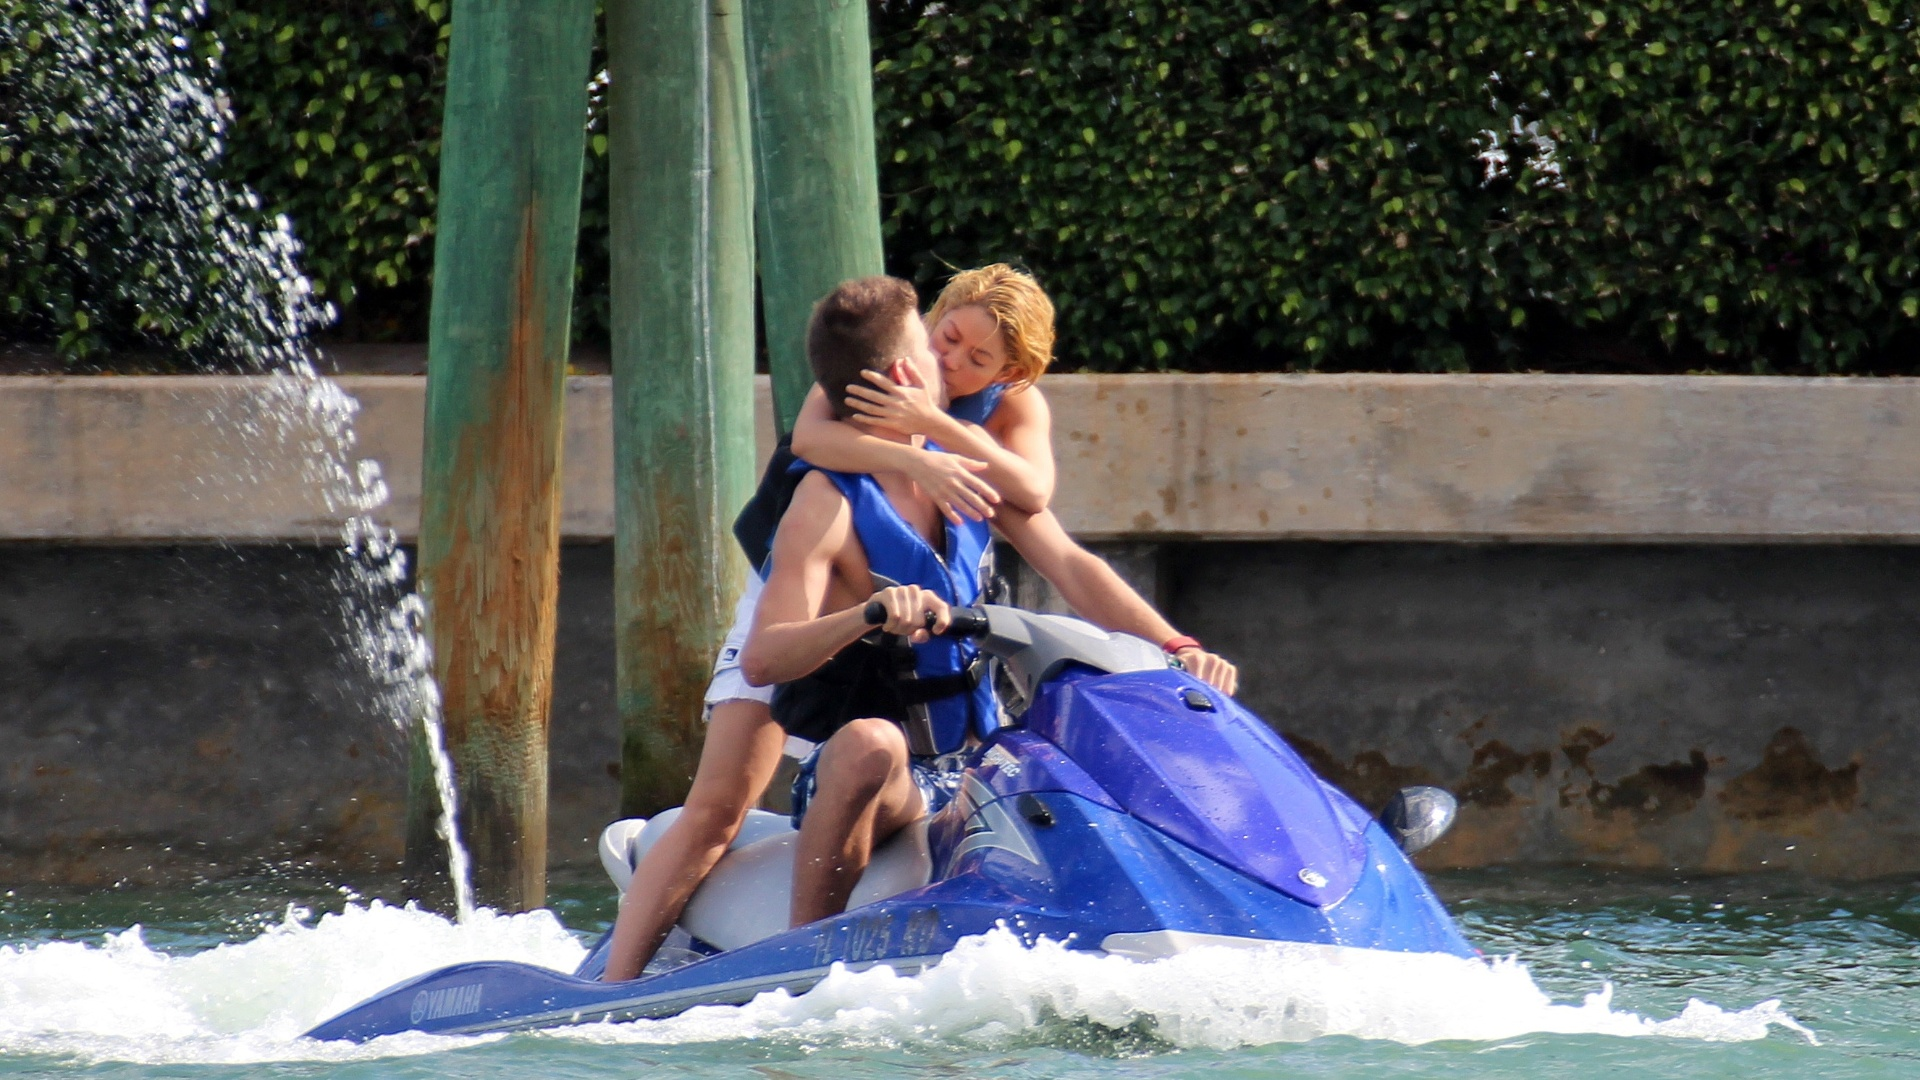 Shakira e Gerard Piqu trocam beijos durante passeio de jet-sky em Miami (28/12/11)